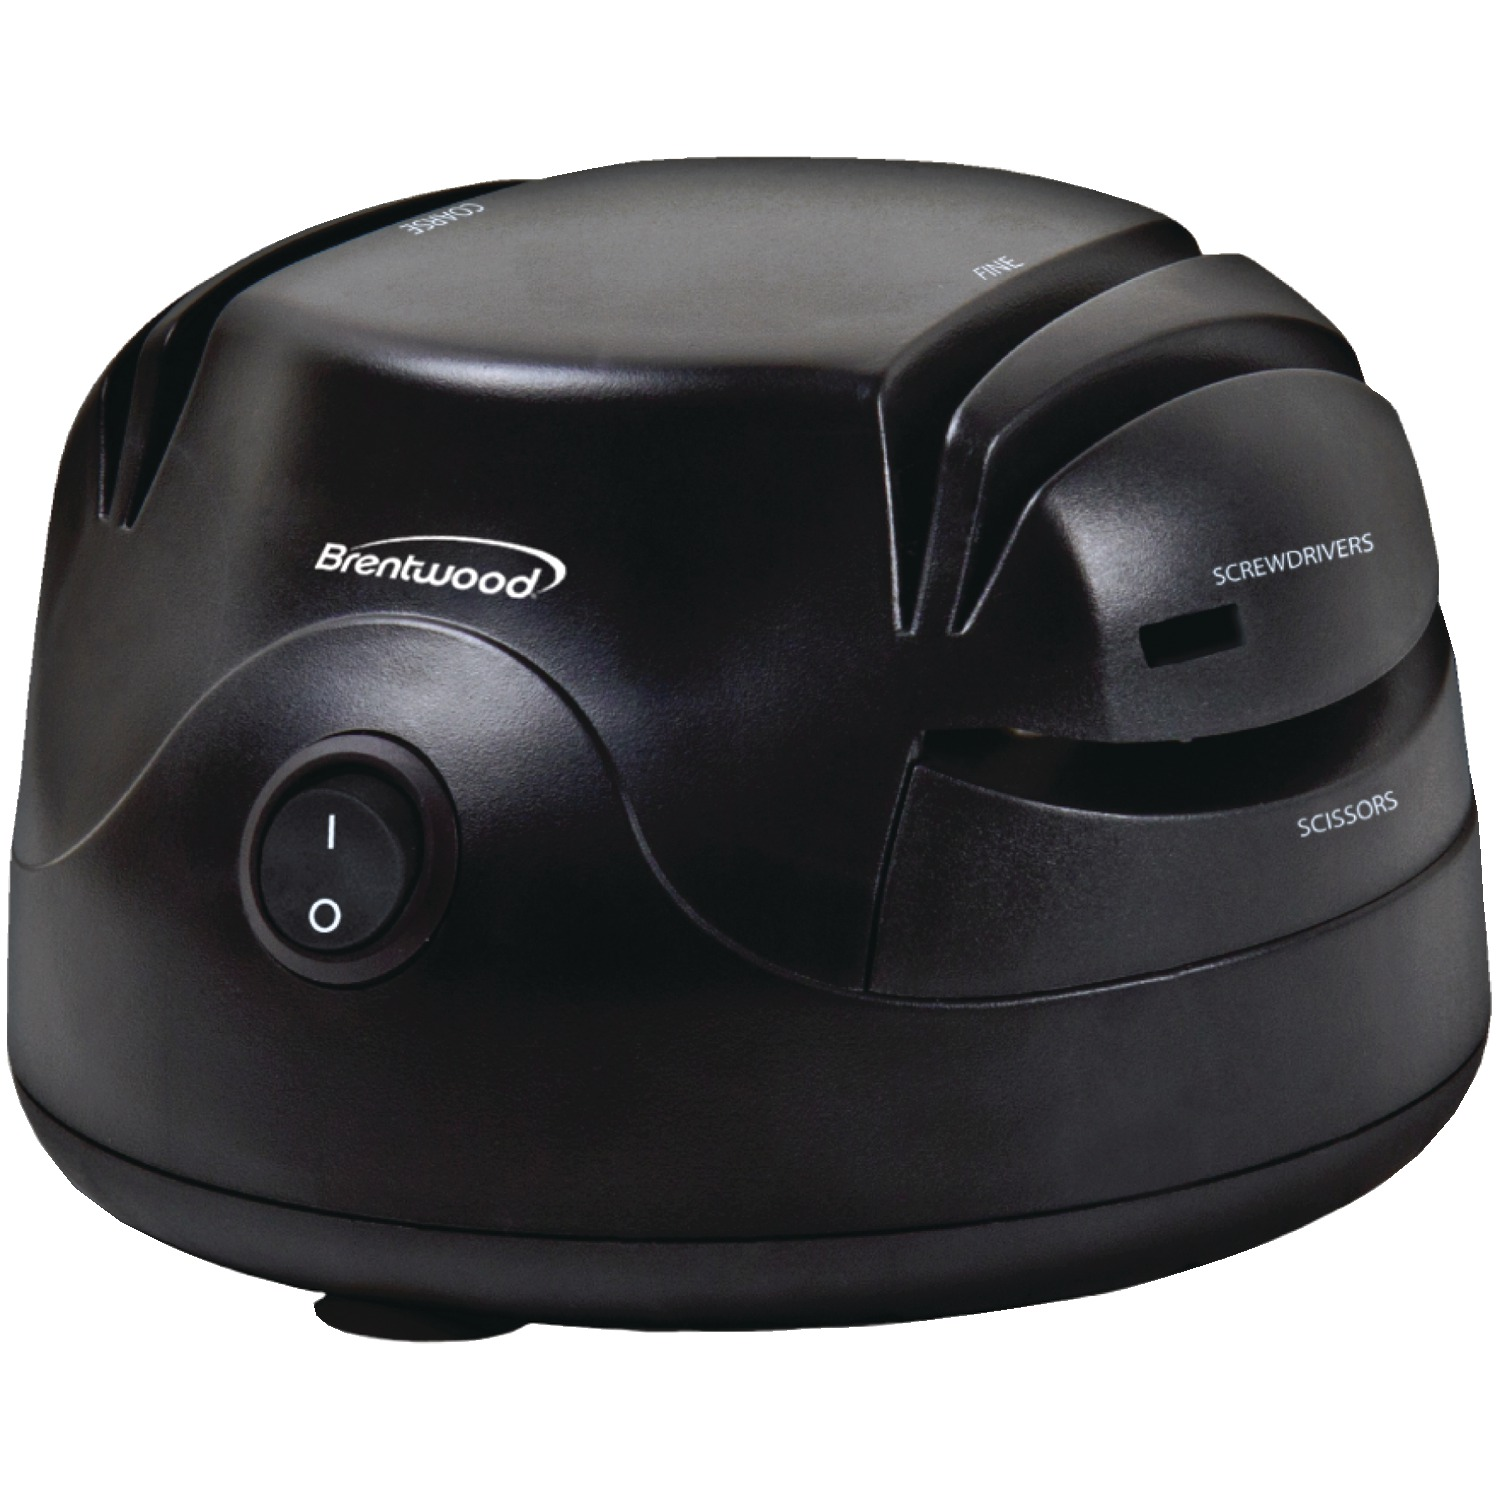 Brentwood Appliances TS-1002 Electric KNIFE & Tool Sharpener